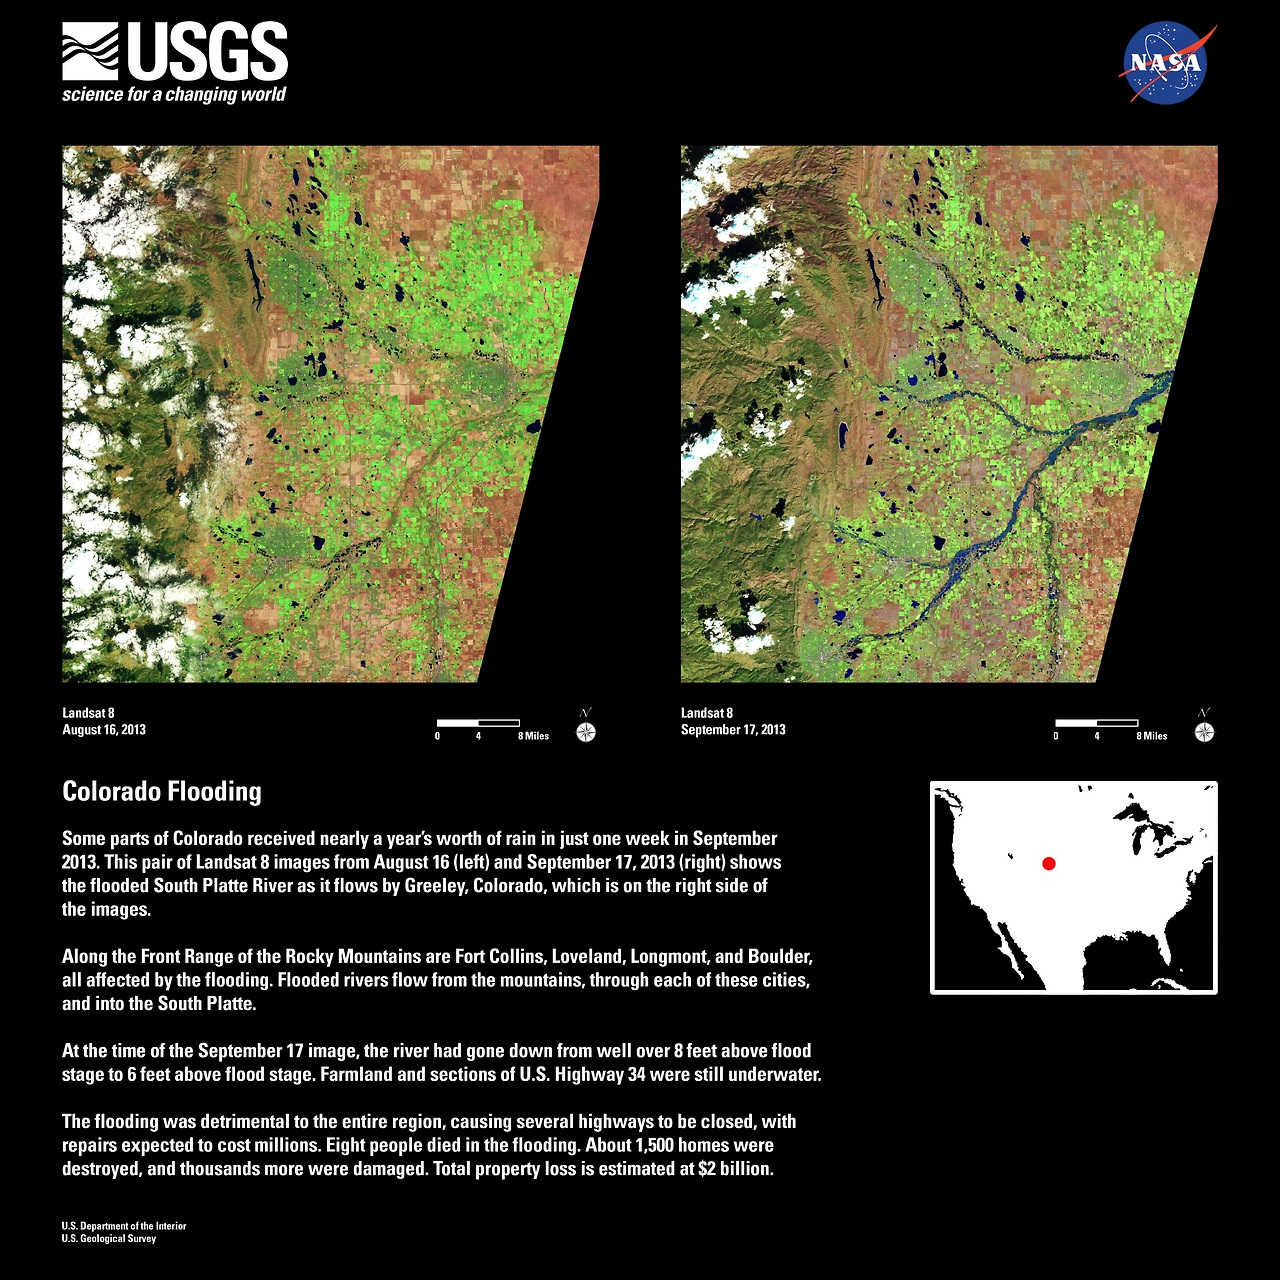 Image description: Some parts of Colorado received nearly a year's worth of rain in just one week in September 2013. This pair of Landsat 8 images from August 16 (left) and September 17, 2013 (right) shows the flooded South Platte River as it flows by Greeley, Colorado, which is on the right side of the images. Along the Front Range of the Rocky Mountains are Fort Collins, Loveland, Longmont, and Boulder, all affected by the flooding. Flooded rivers flow from the mountains, through each of these cities, and into the South Platte. At the time of the September 17 image, the river had gone down from well over 8 feet above flood stage to 6 feet above flood stage. Farmland and sections of U.S. Highway 34 were still underwater. The flooding was detrimental to the entire region, causing several highways to be closed, with repairs expected to cost millions. Eight people died in the flooding. About 1,500 homes were destroyed, and thousands more were damaged. Total property loss is estimated at $2 billion. Image from the U.S. Geological Survey.